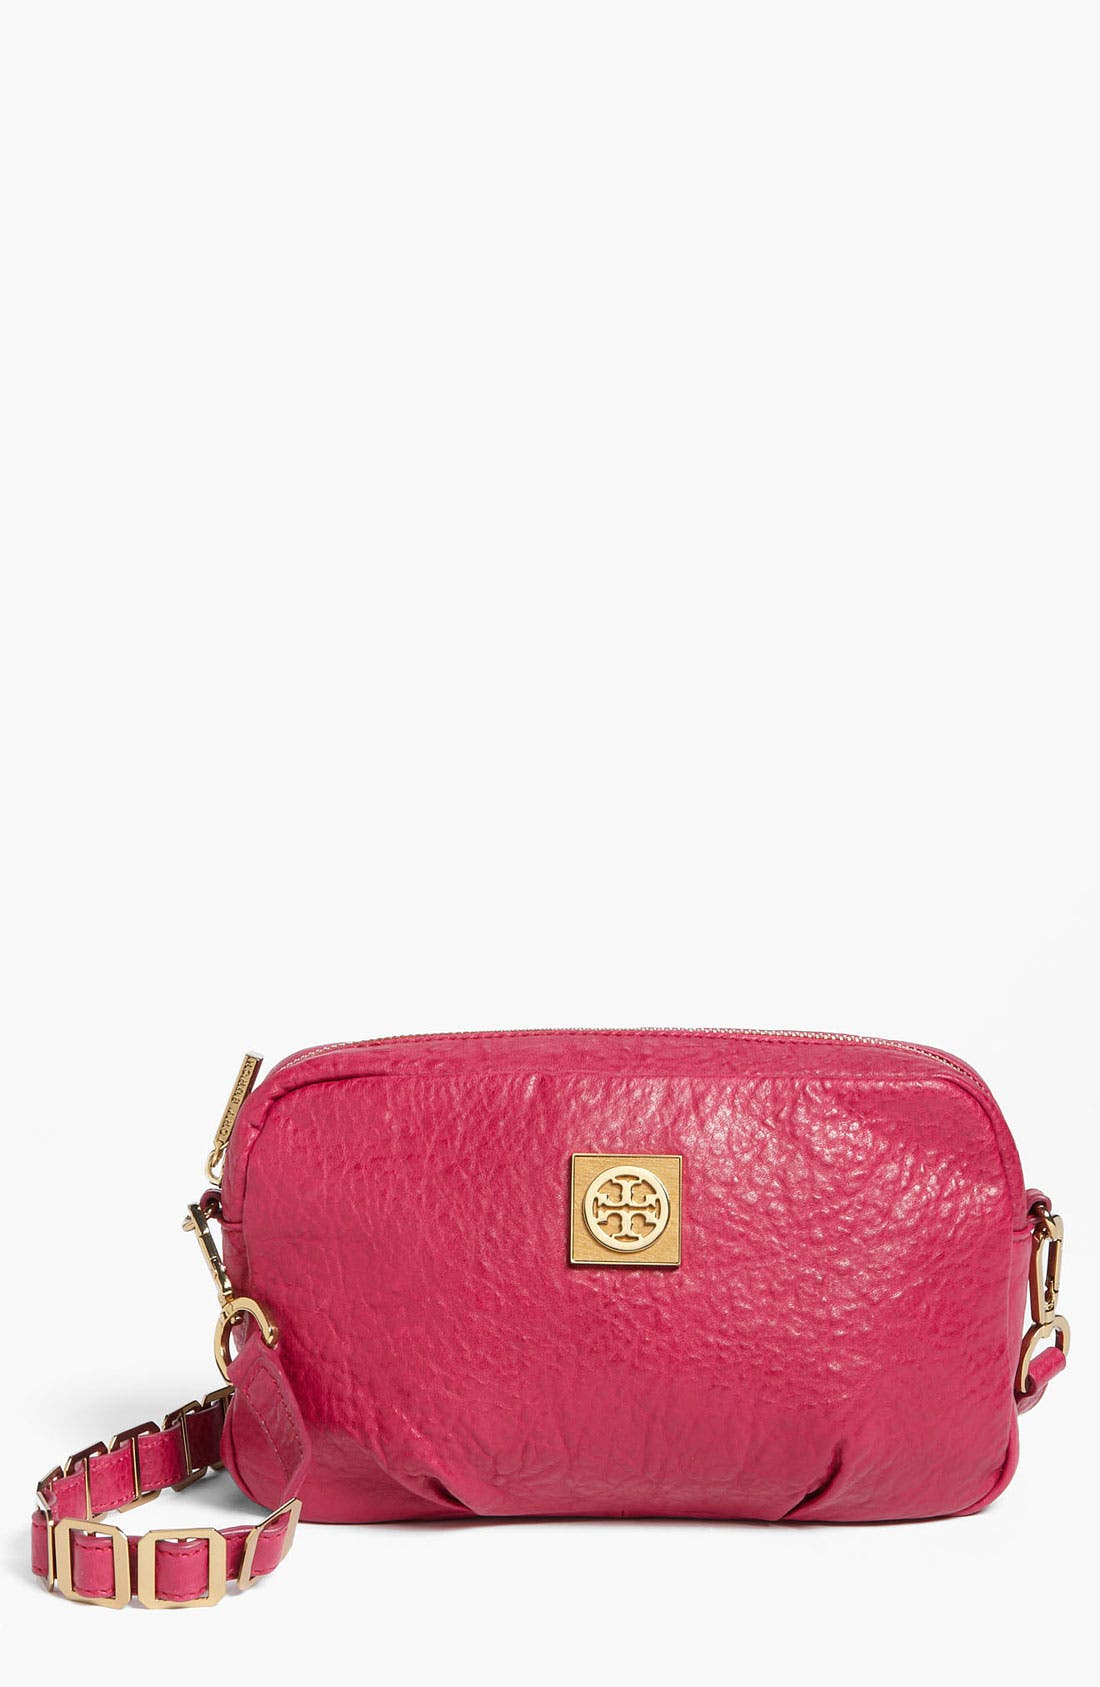 Main Image - Tory Burch 'Louiisa - Mini' Crossbody Bag